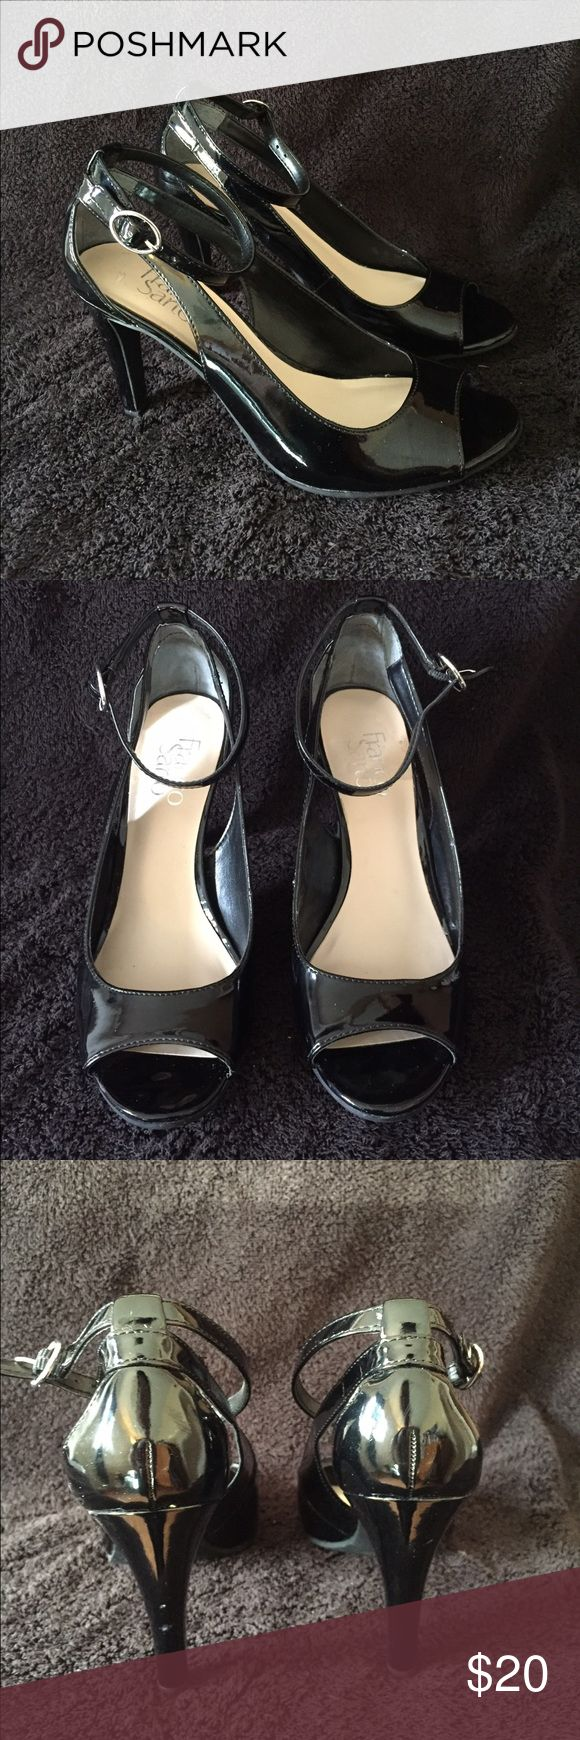 Black heels Black open toe heels with ankle strap. Used but in great condition Franco Sarto Shoes Heels